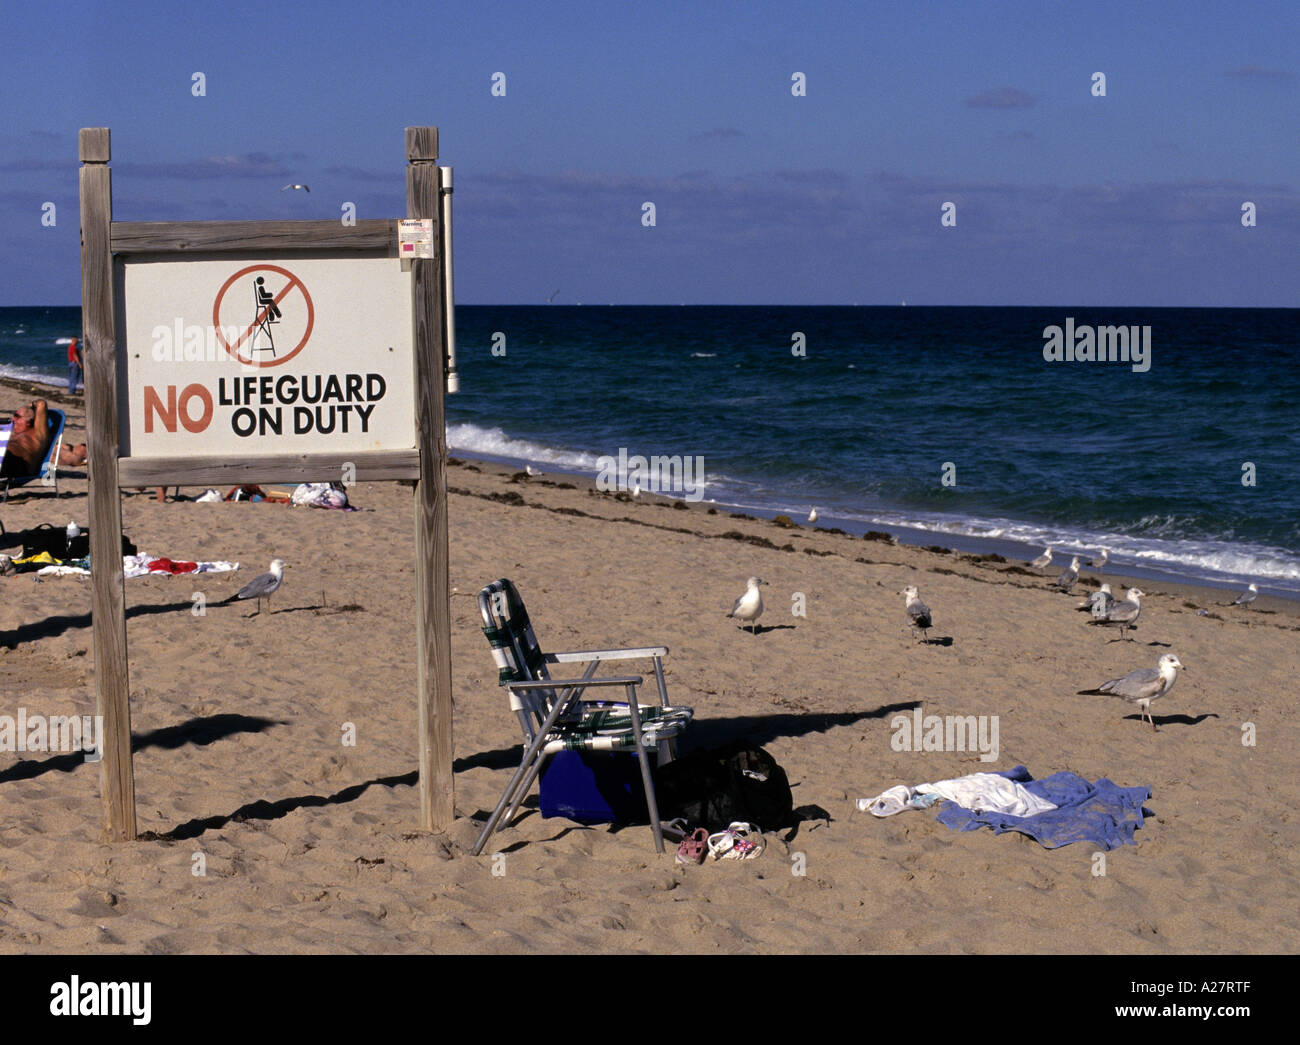 96b3f3b06e8 no lifeguard on duty sign on the beach of Fort Lauderdale Florida USA -  Stock Image